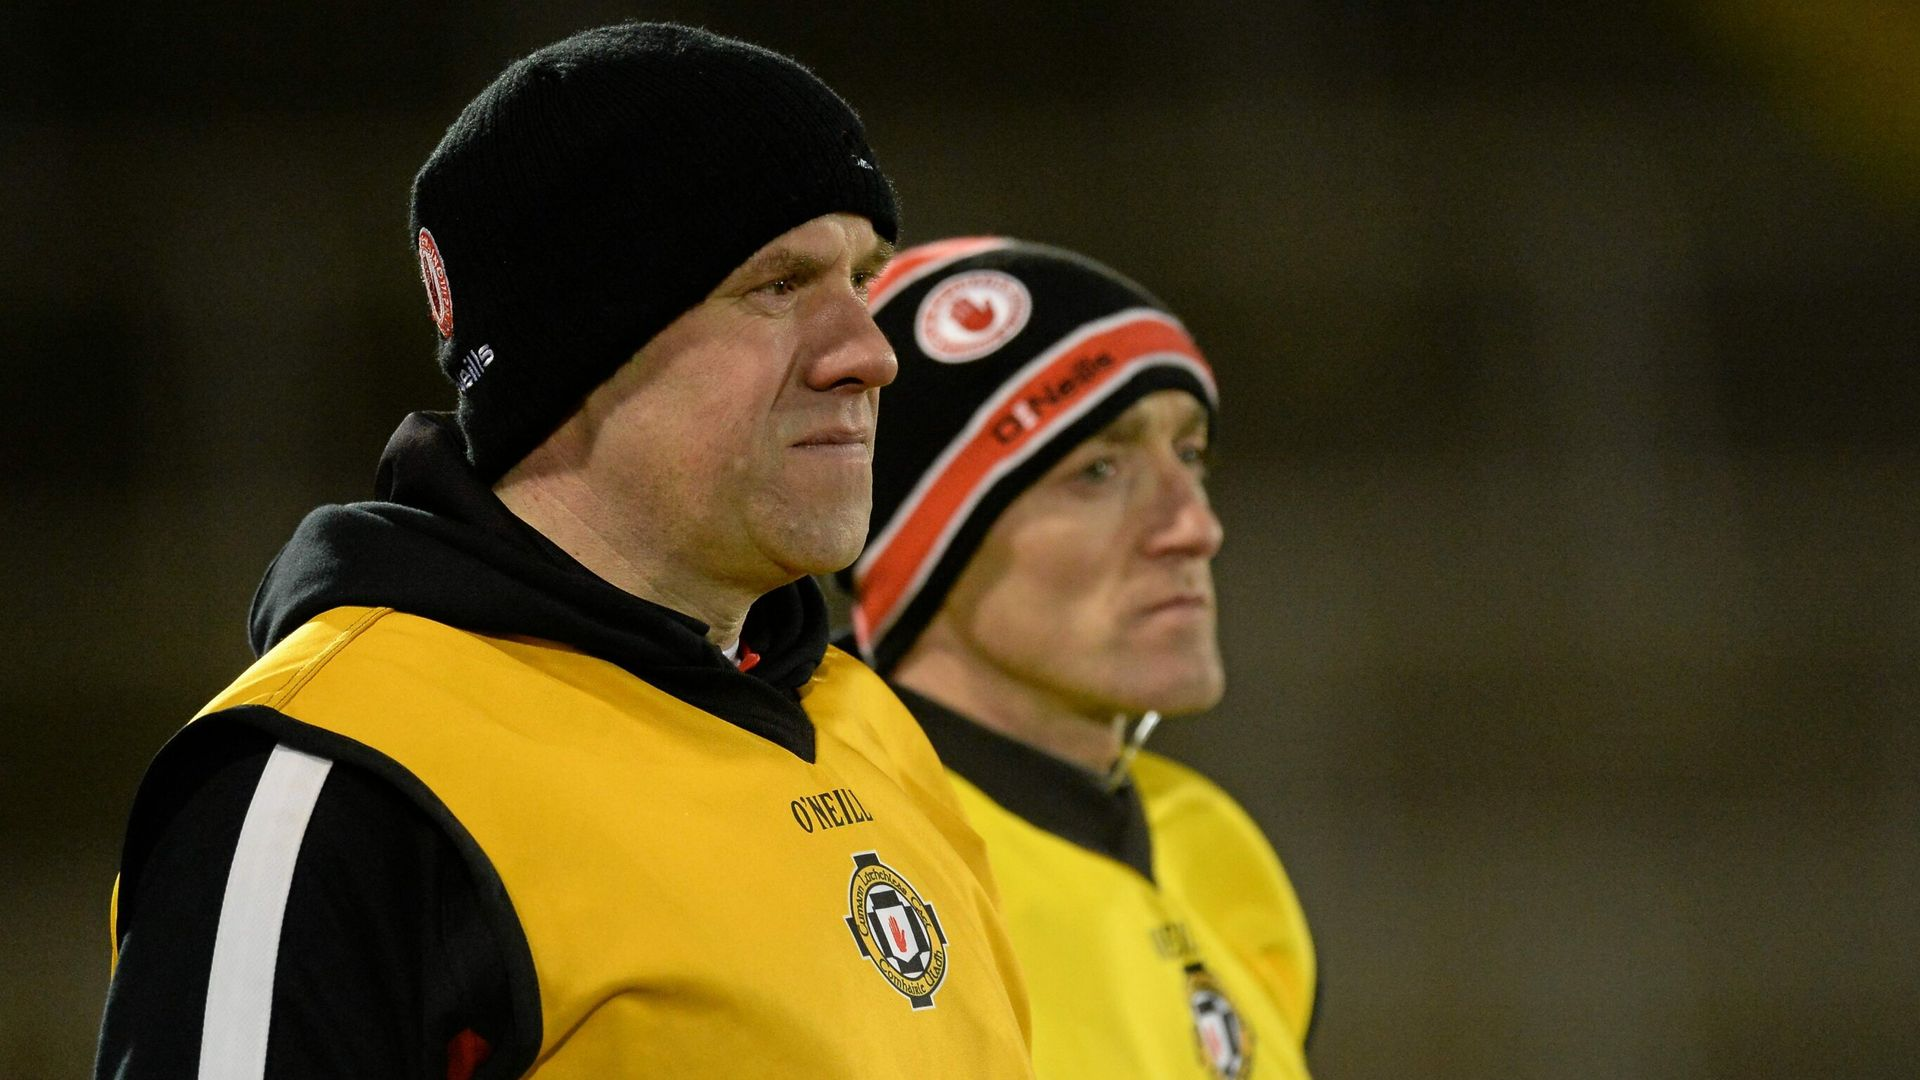 Tyrone announce Logan and Dooher as joint-managers - sky sports